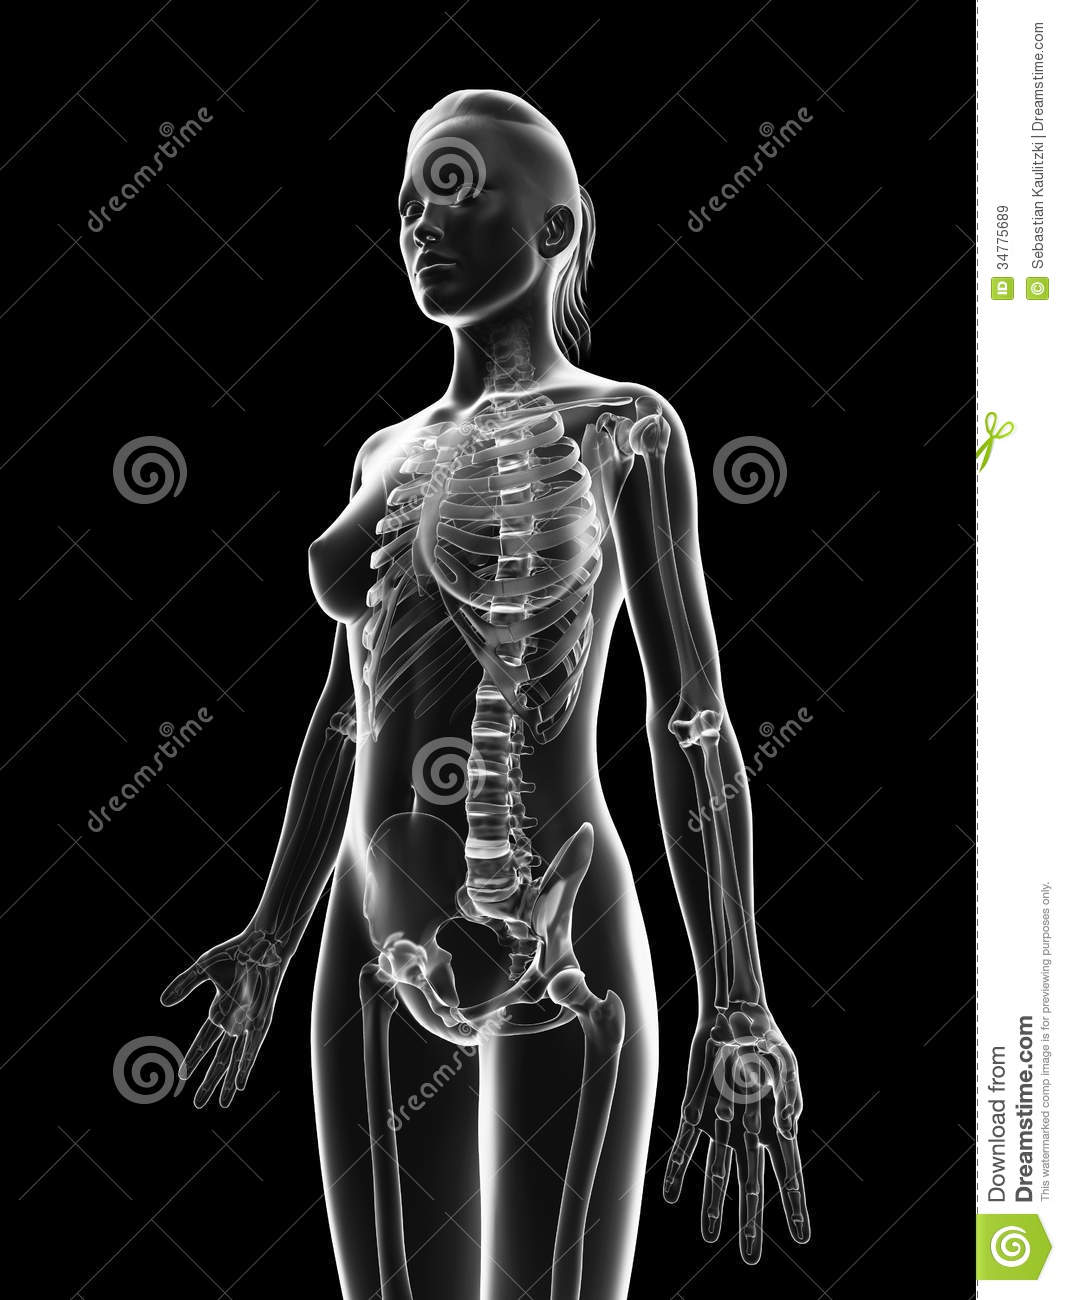 transparent body stock illustrations 21 721 transparent body stock illustrations vectors clipart dreamstime dreamstime com